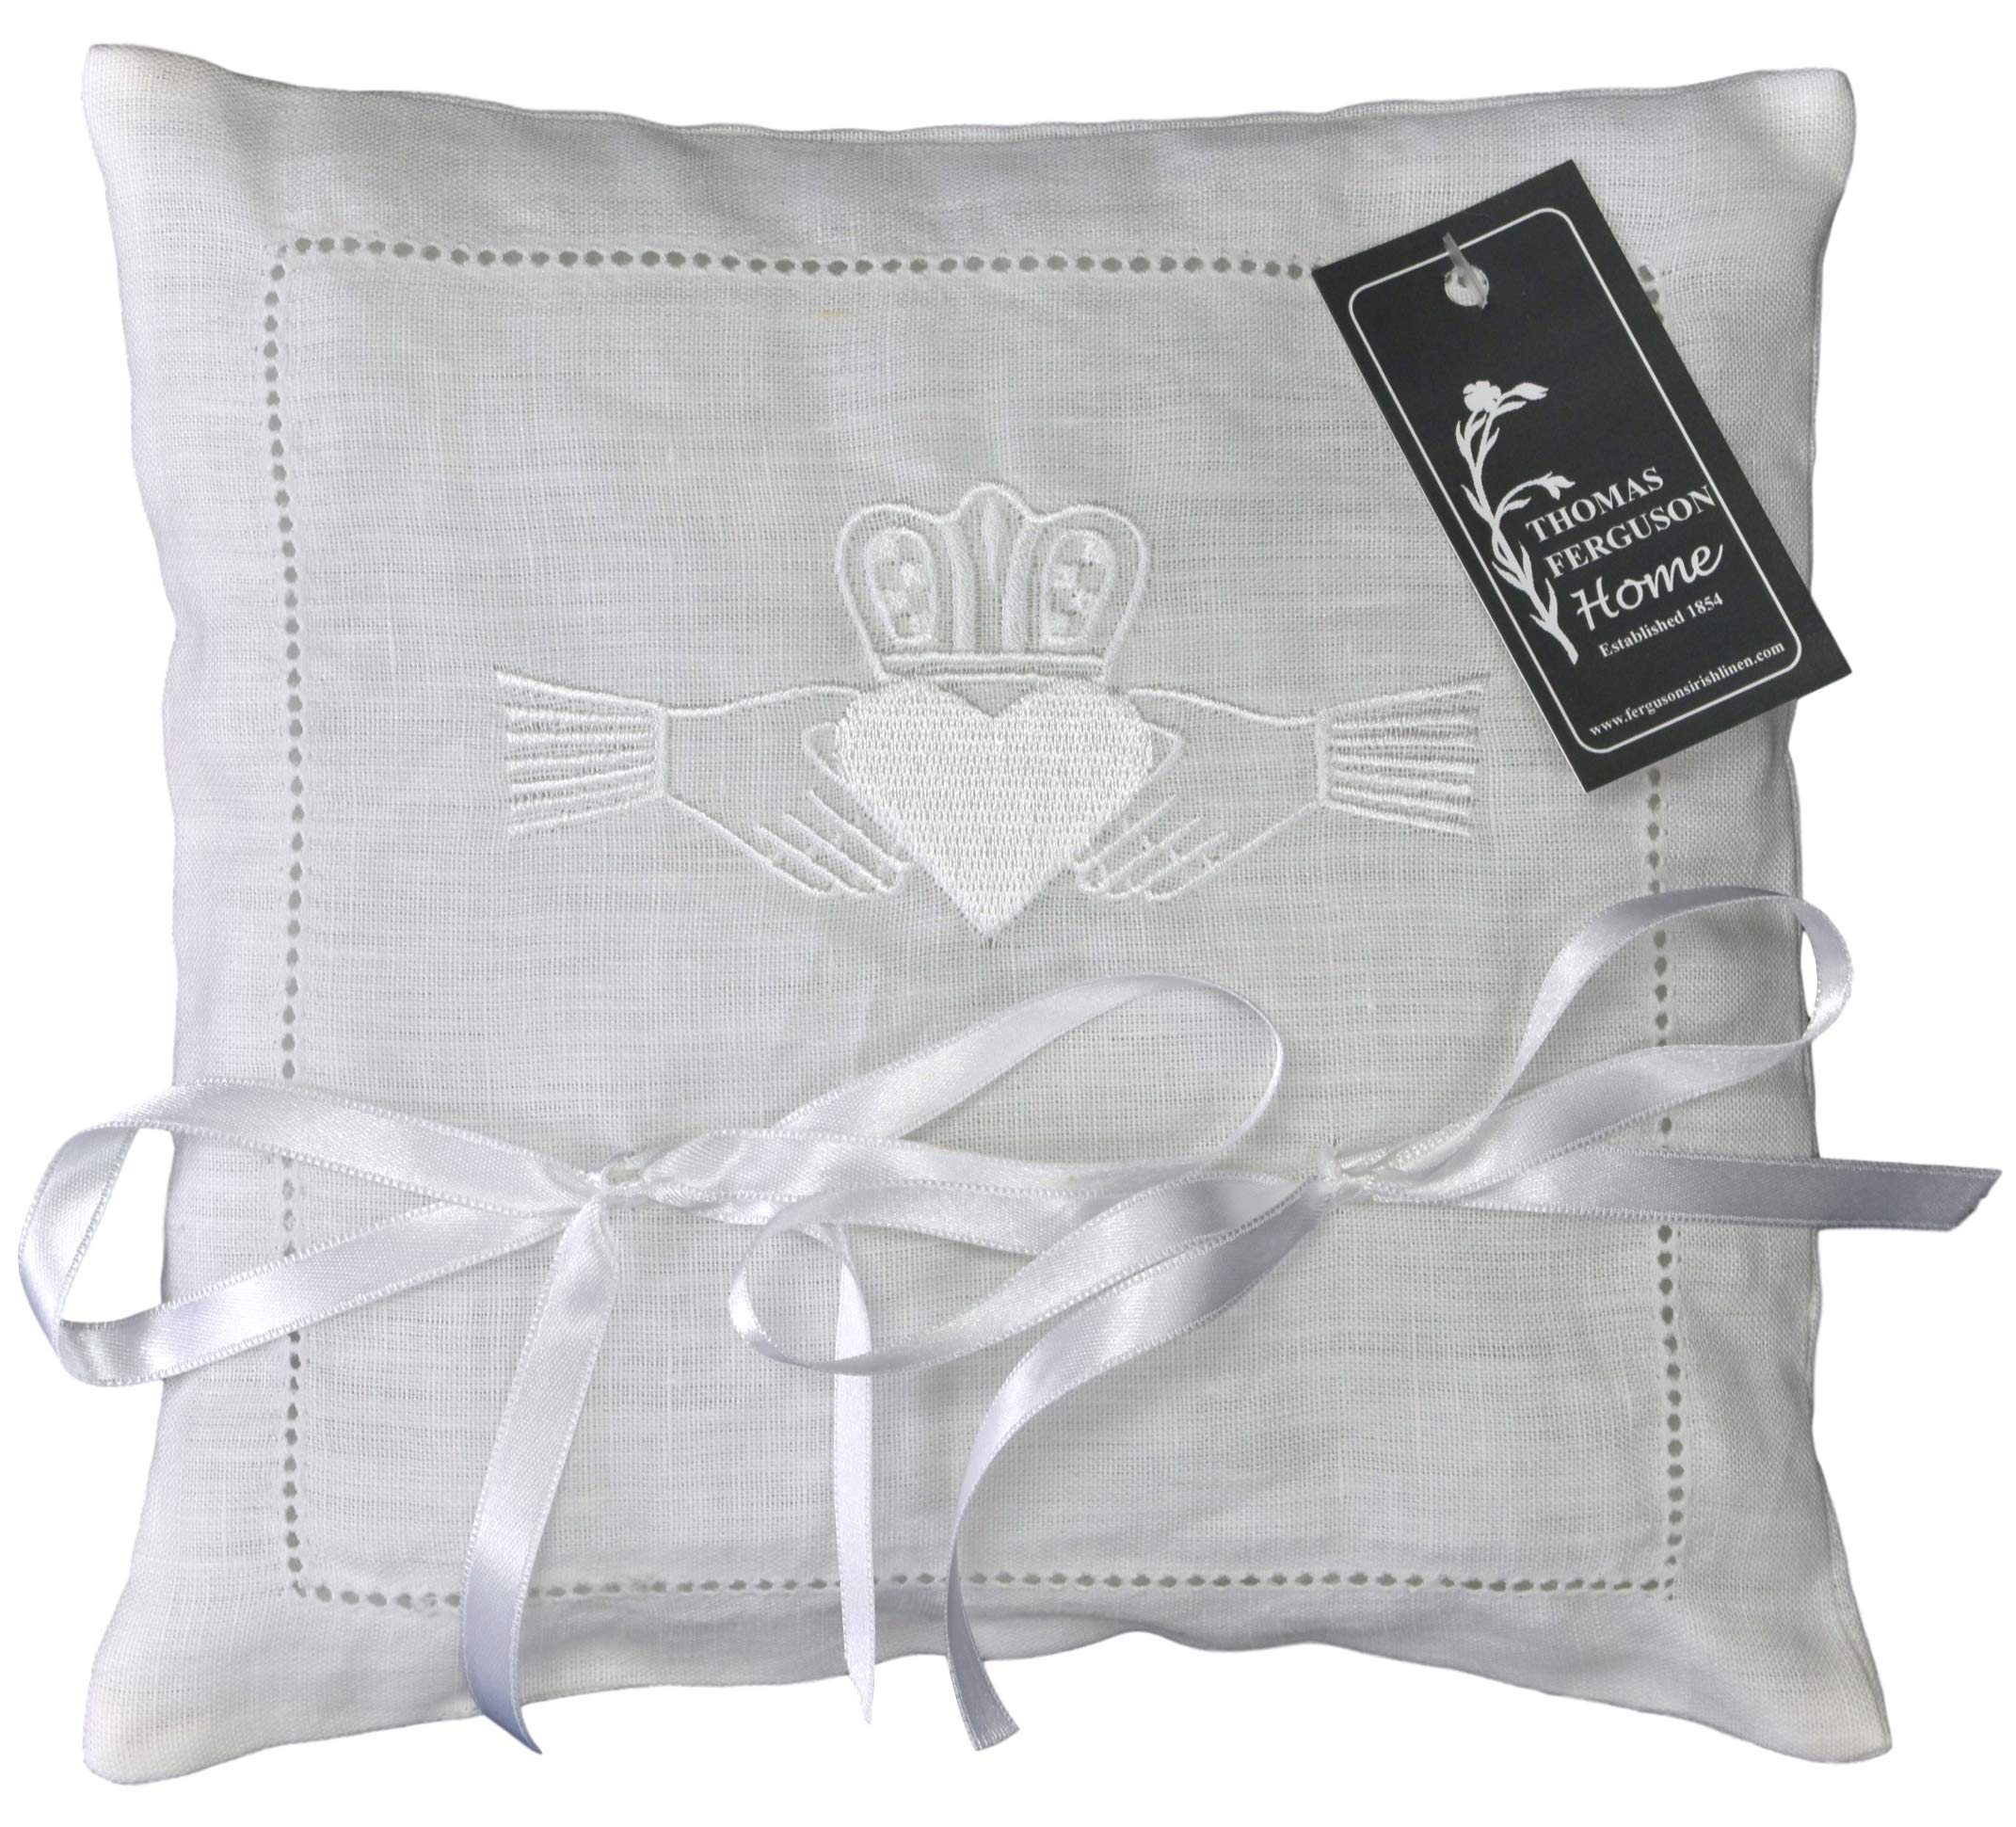 Thomas Ferguson Irish Linen - Wedding Ring Cushion with Embroidered Claddagh Heart Design, White